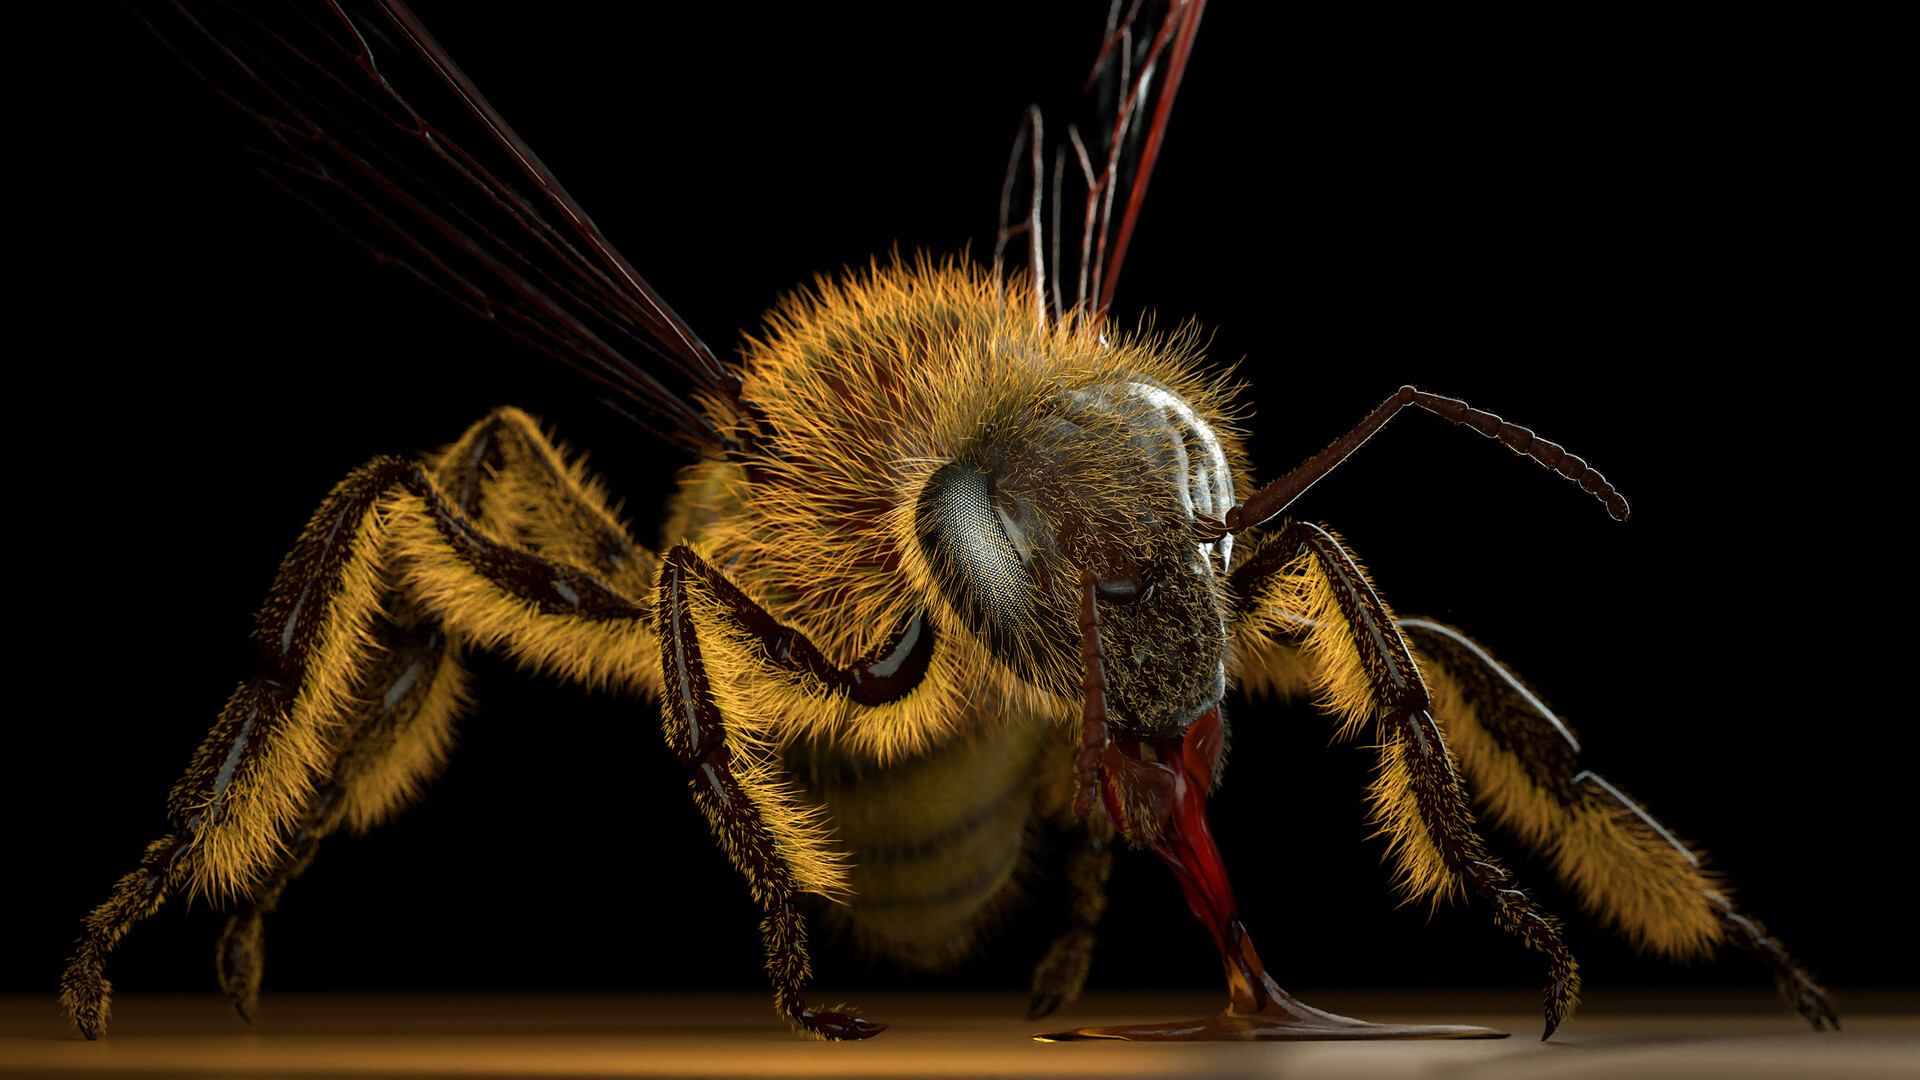 Eric keller bee large render 01